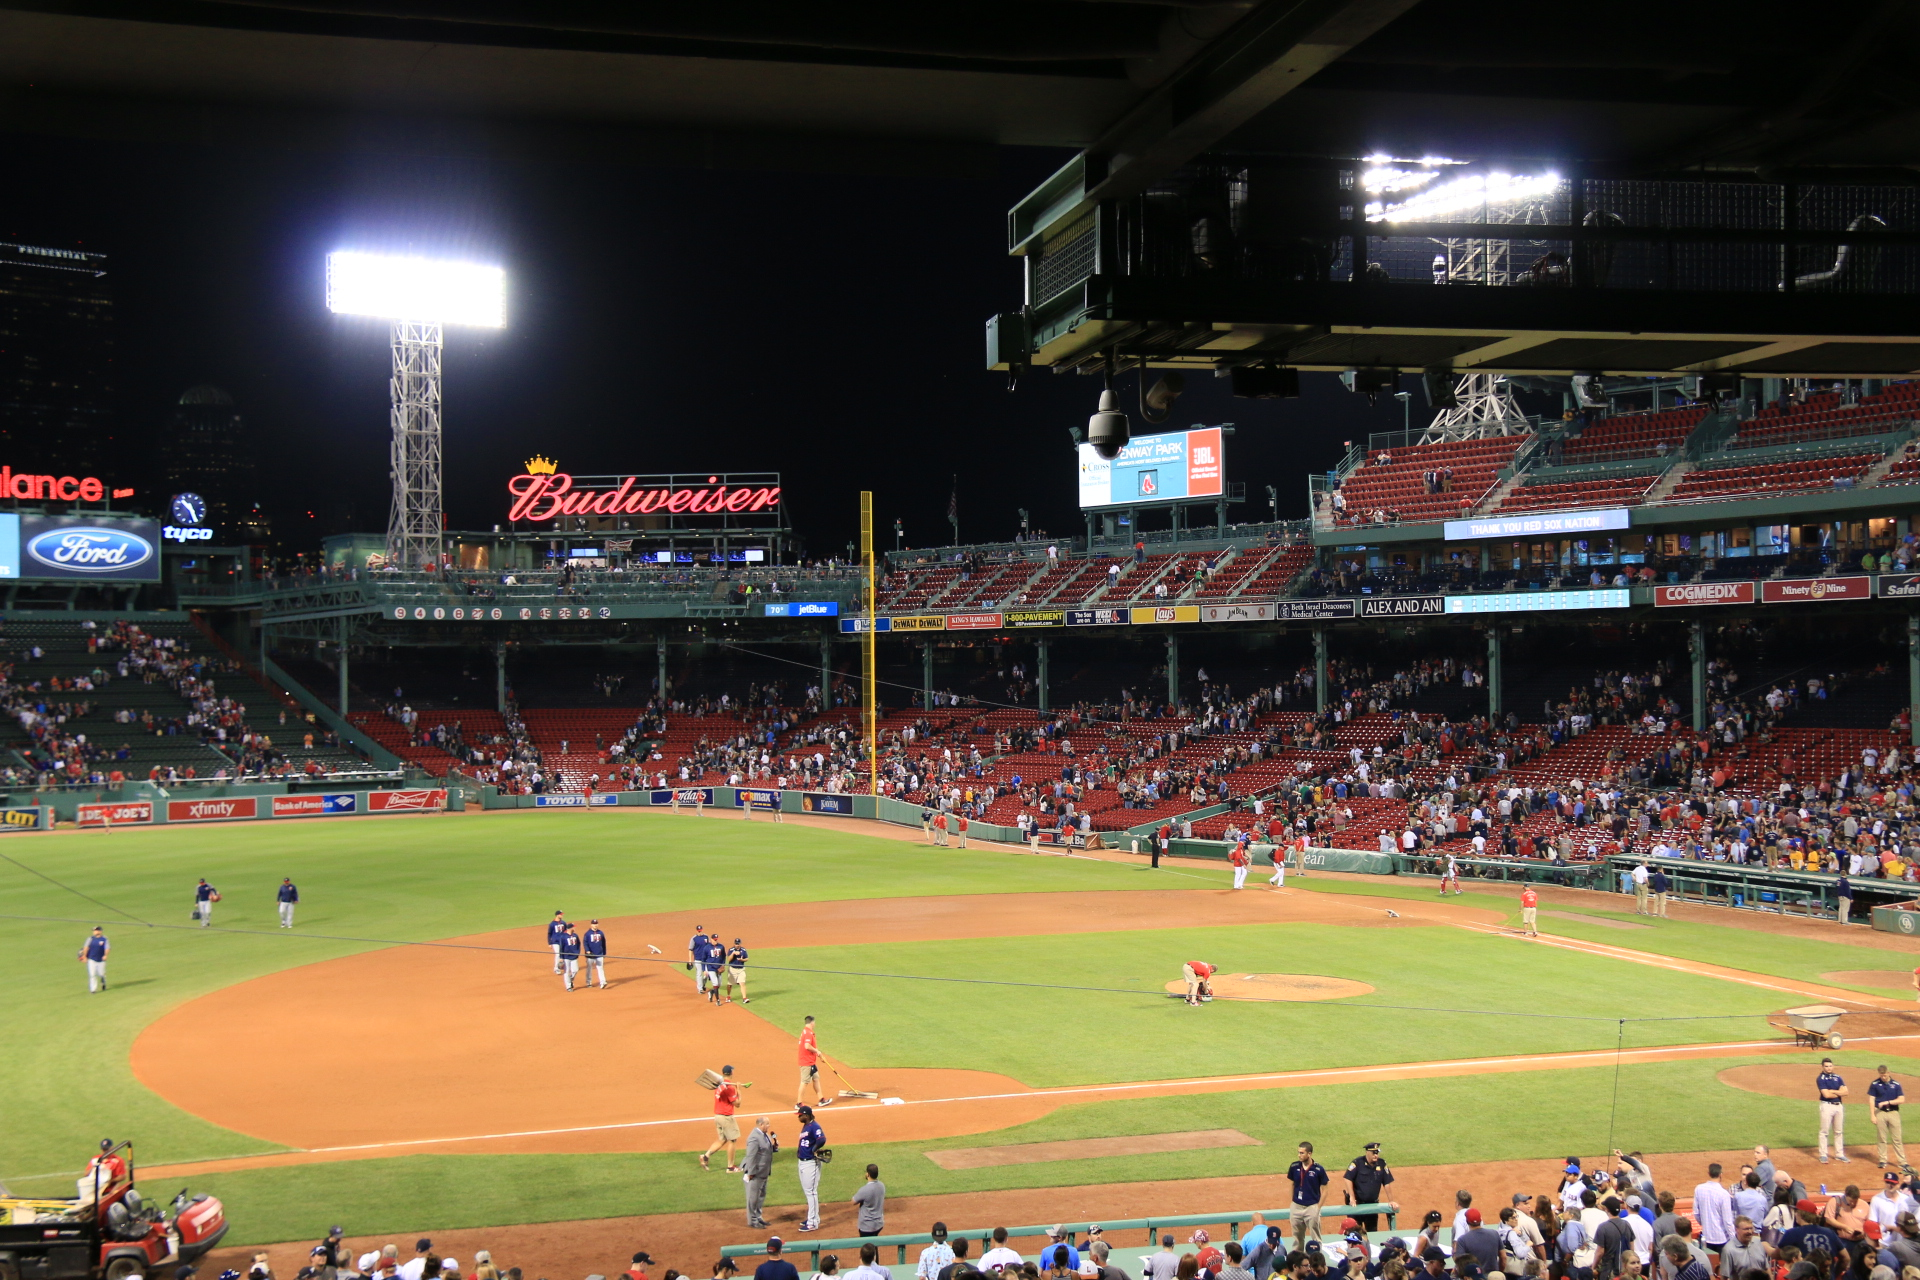 A huge highlight for me was going to a Red Sox Game!